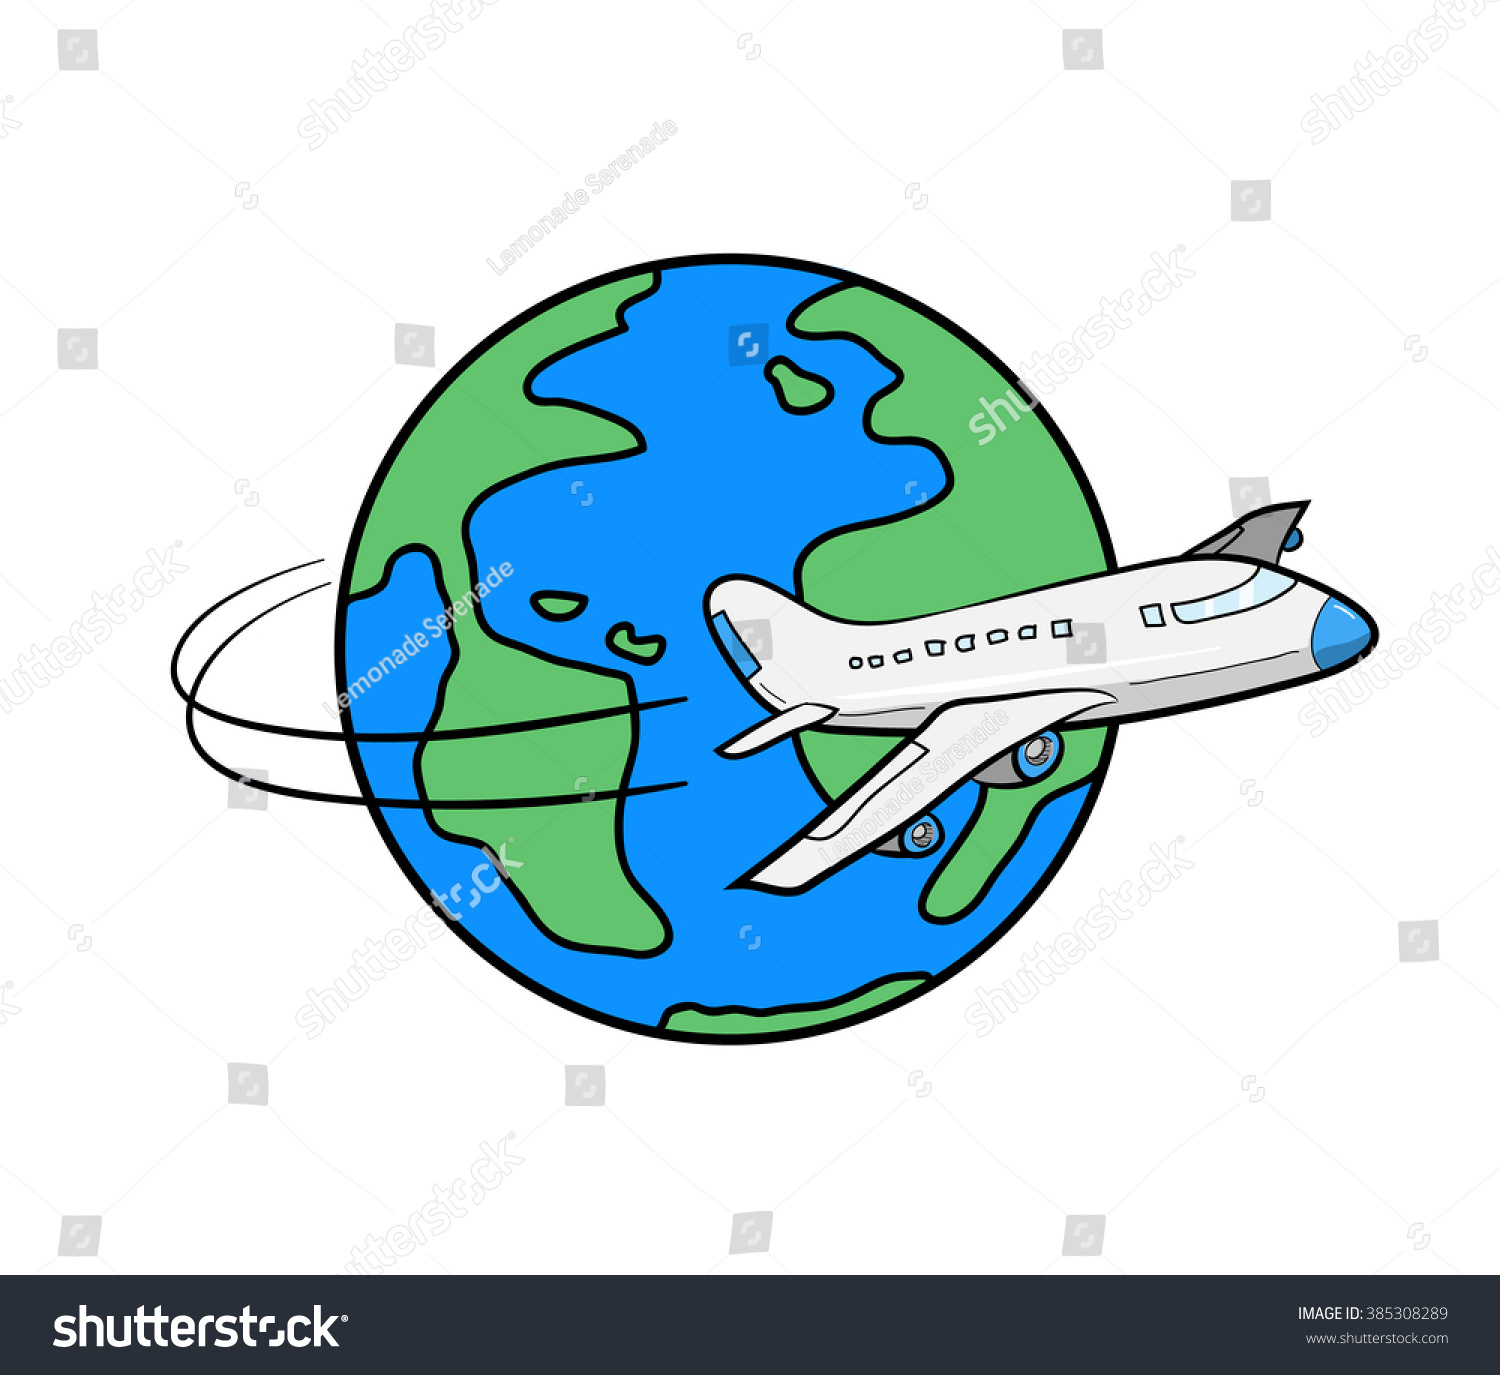 Travel around world hand drawn vector stock vector for All around the world cruise